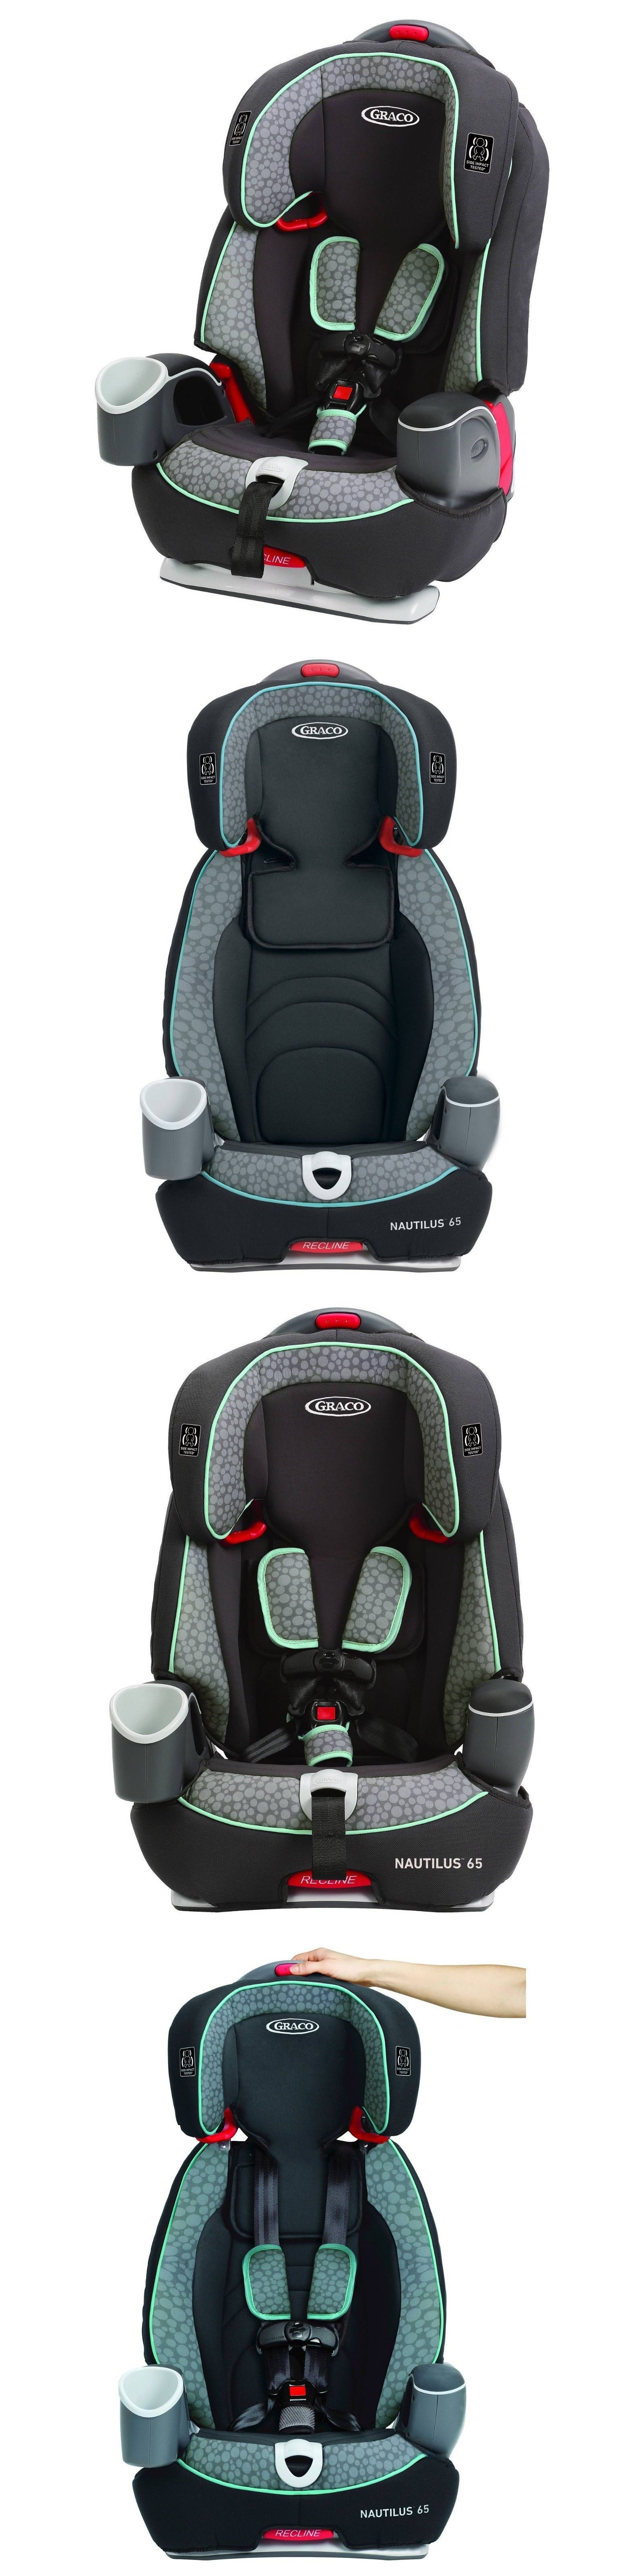 Convertible Car Seat 5 40lbs 66695 New Graco Nautilus 65 Baby Children Toddler Booster Harness